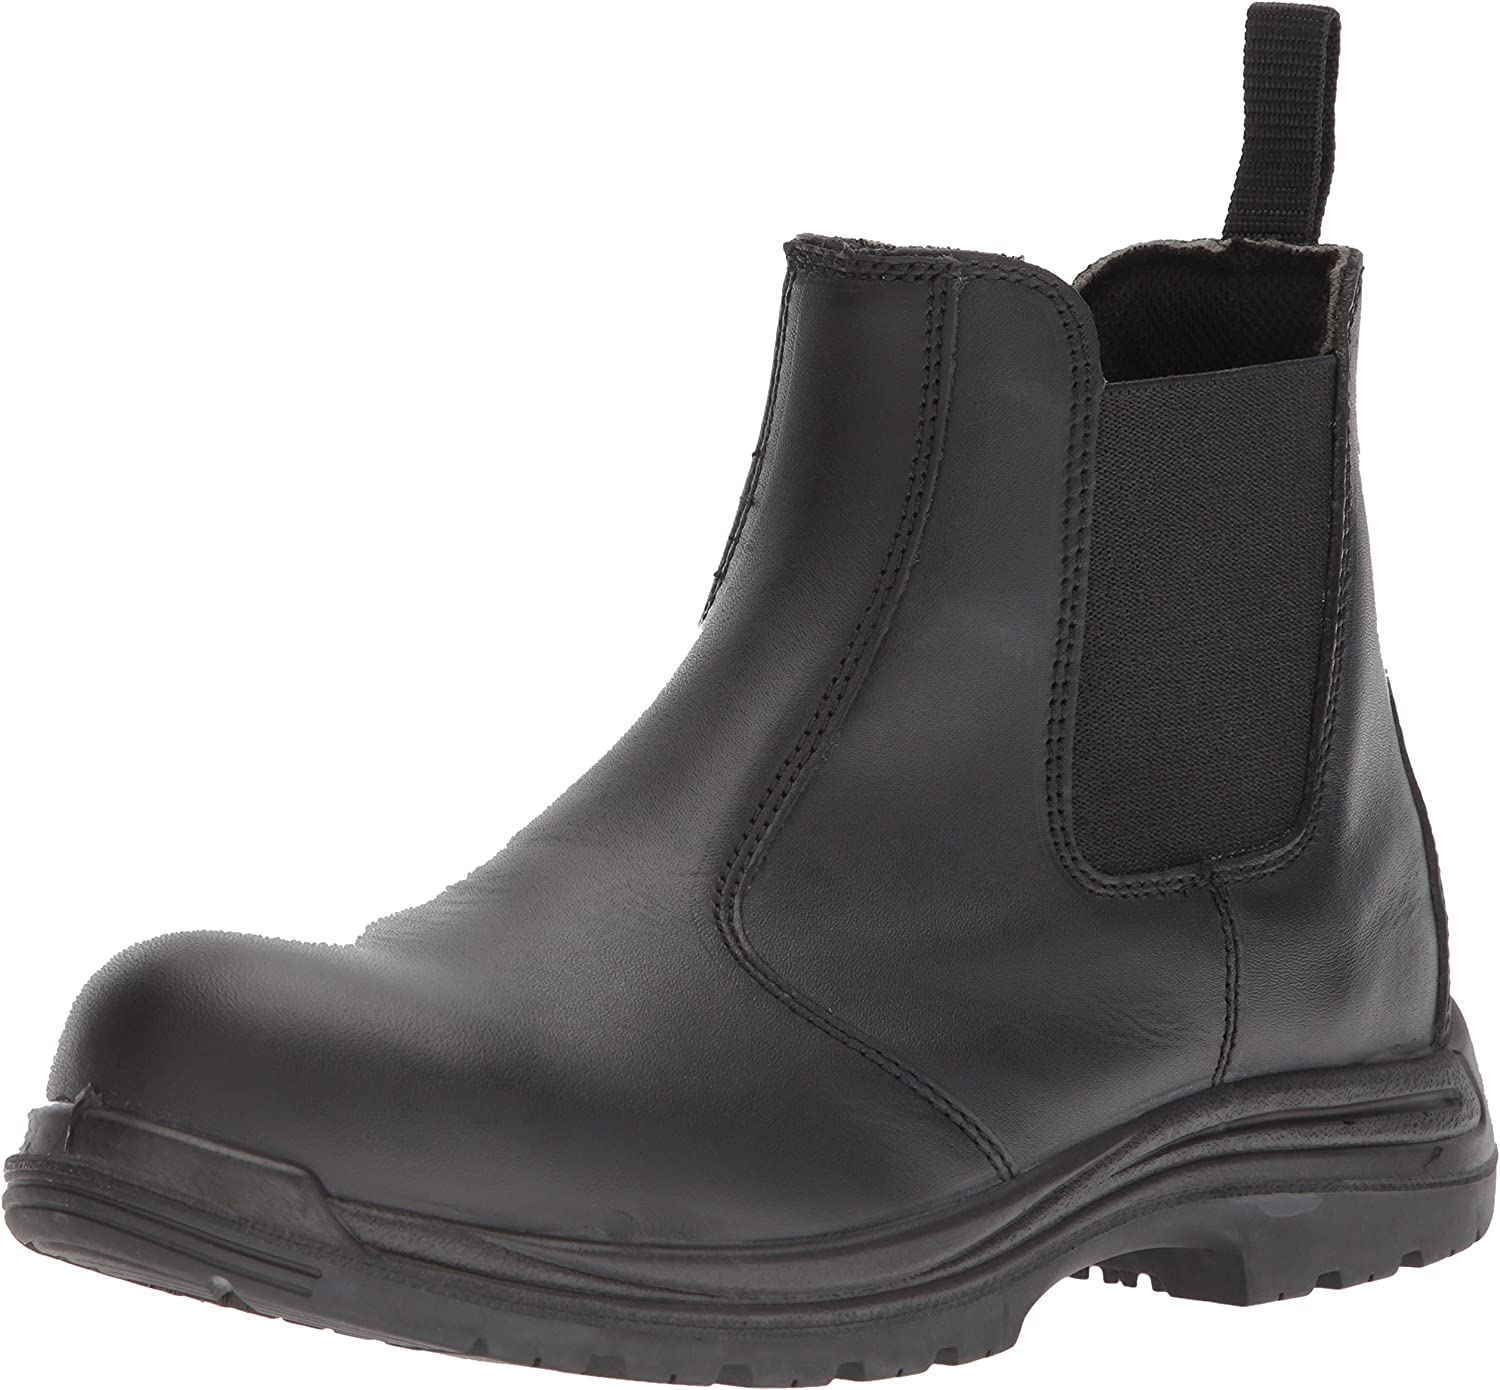 Avenger 7408 Leather Comp Toe Slip-On EH Work shoes